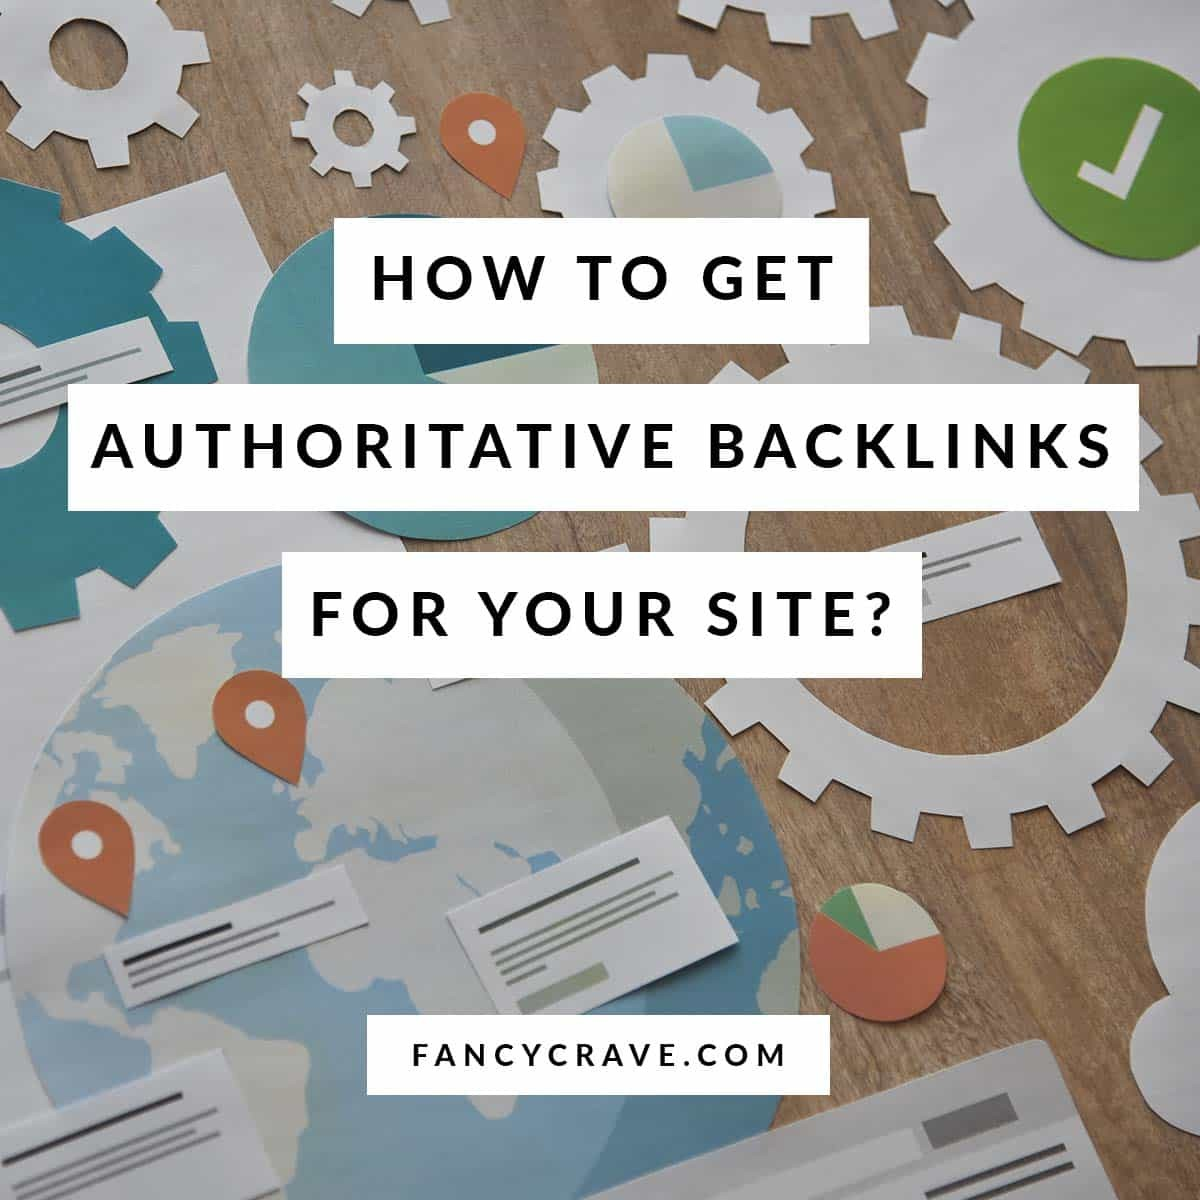 How to Get Authoritative Backlinks for Your Site